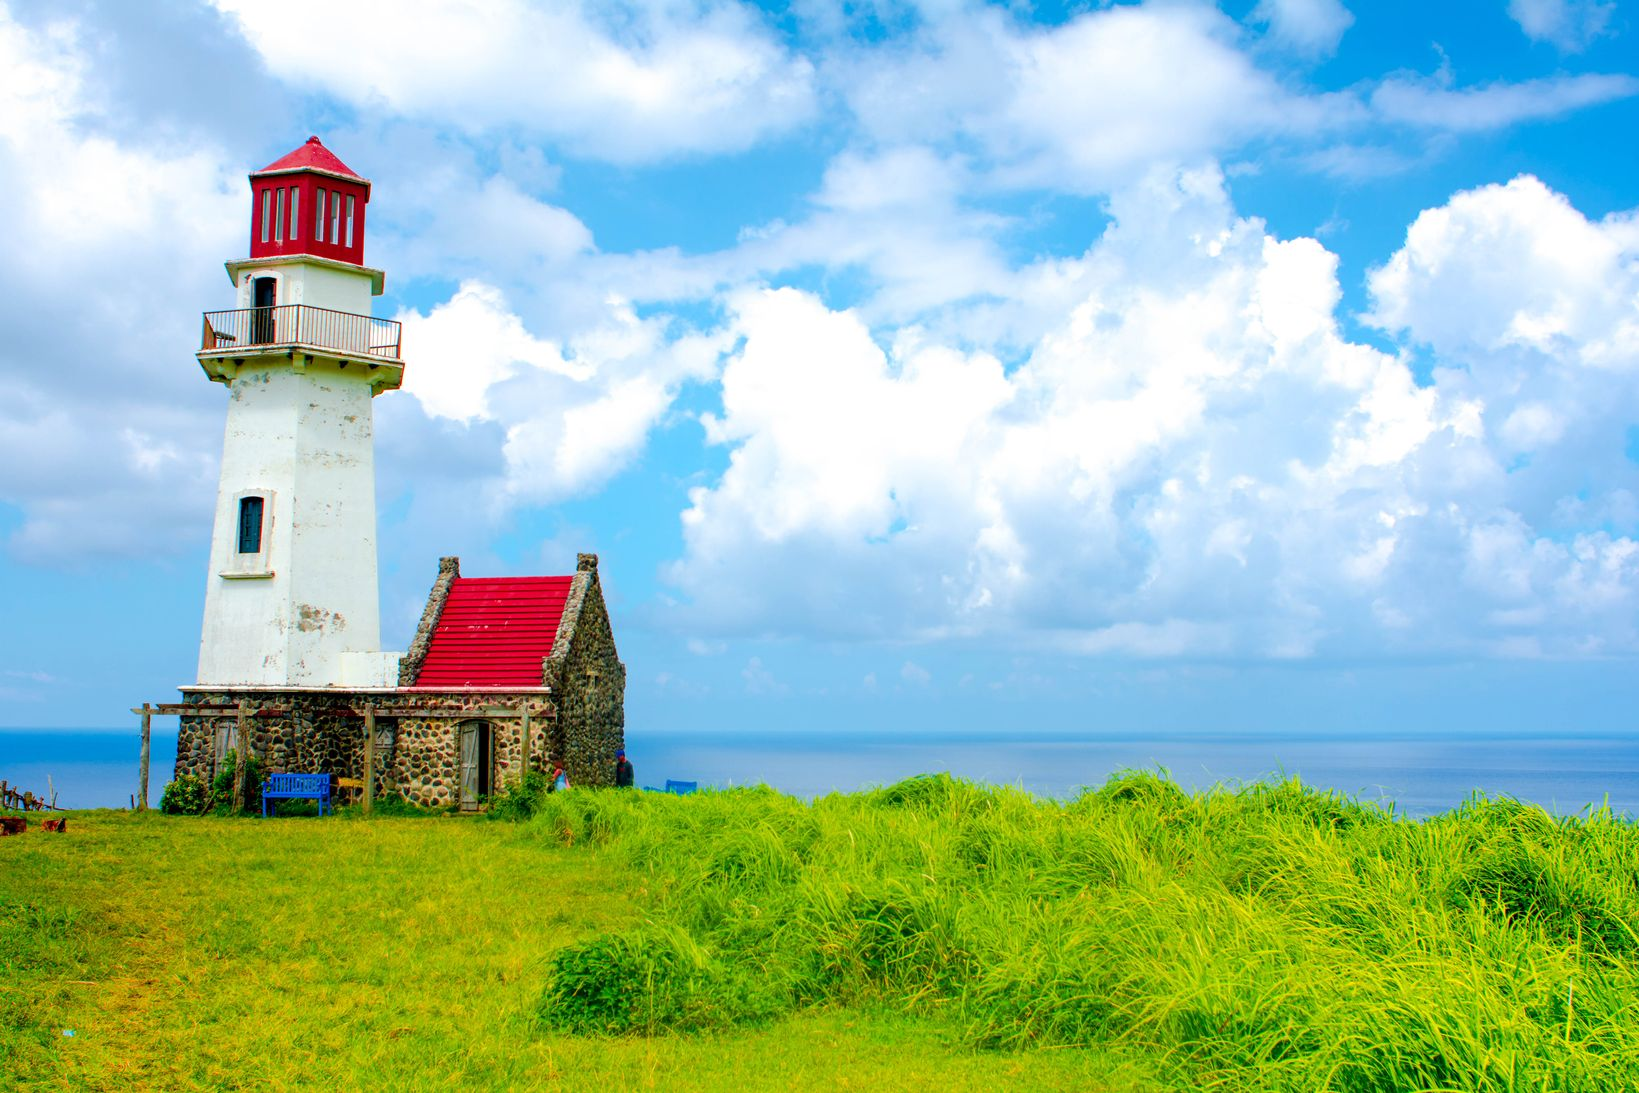 A white-bodied, red-topped lighthouse and a stone house with a similarly red roof stand on a grassy land overlooking the blue sea in Batanes, one of the most beautiful places to visit in the Philippines